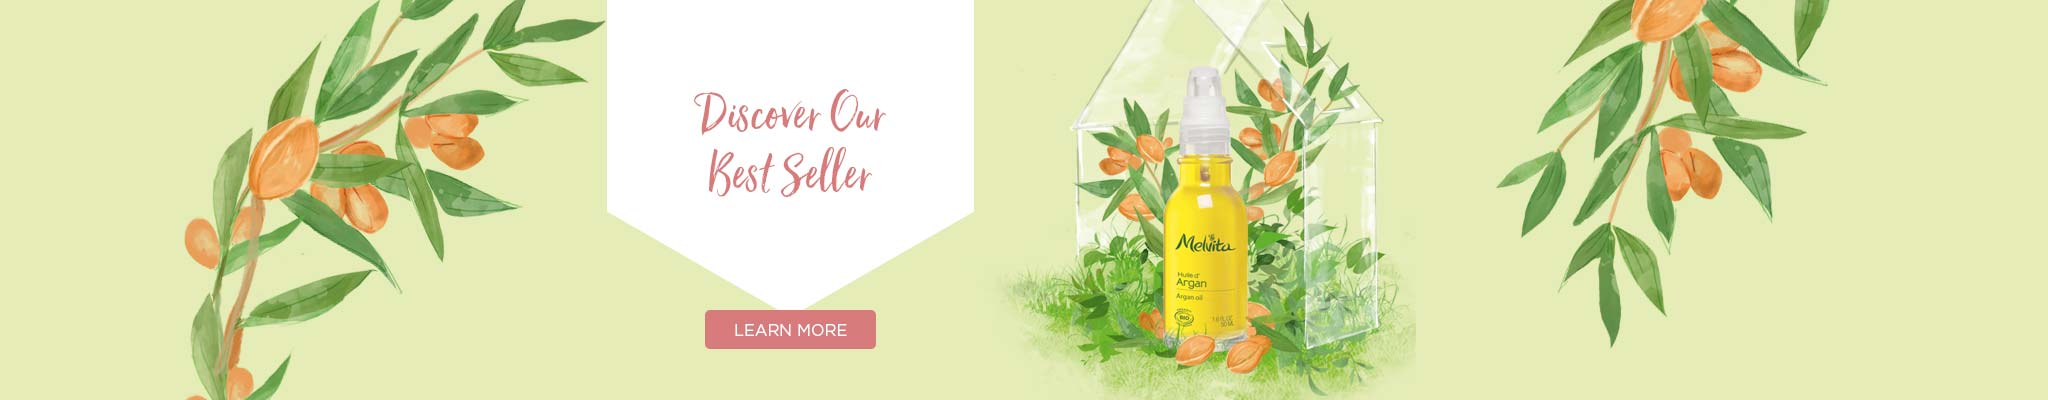 Start Organic With Our Best Seller